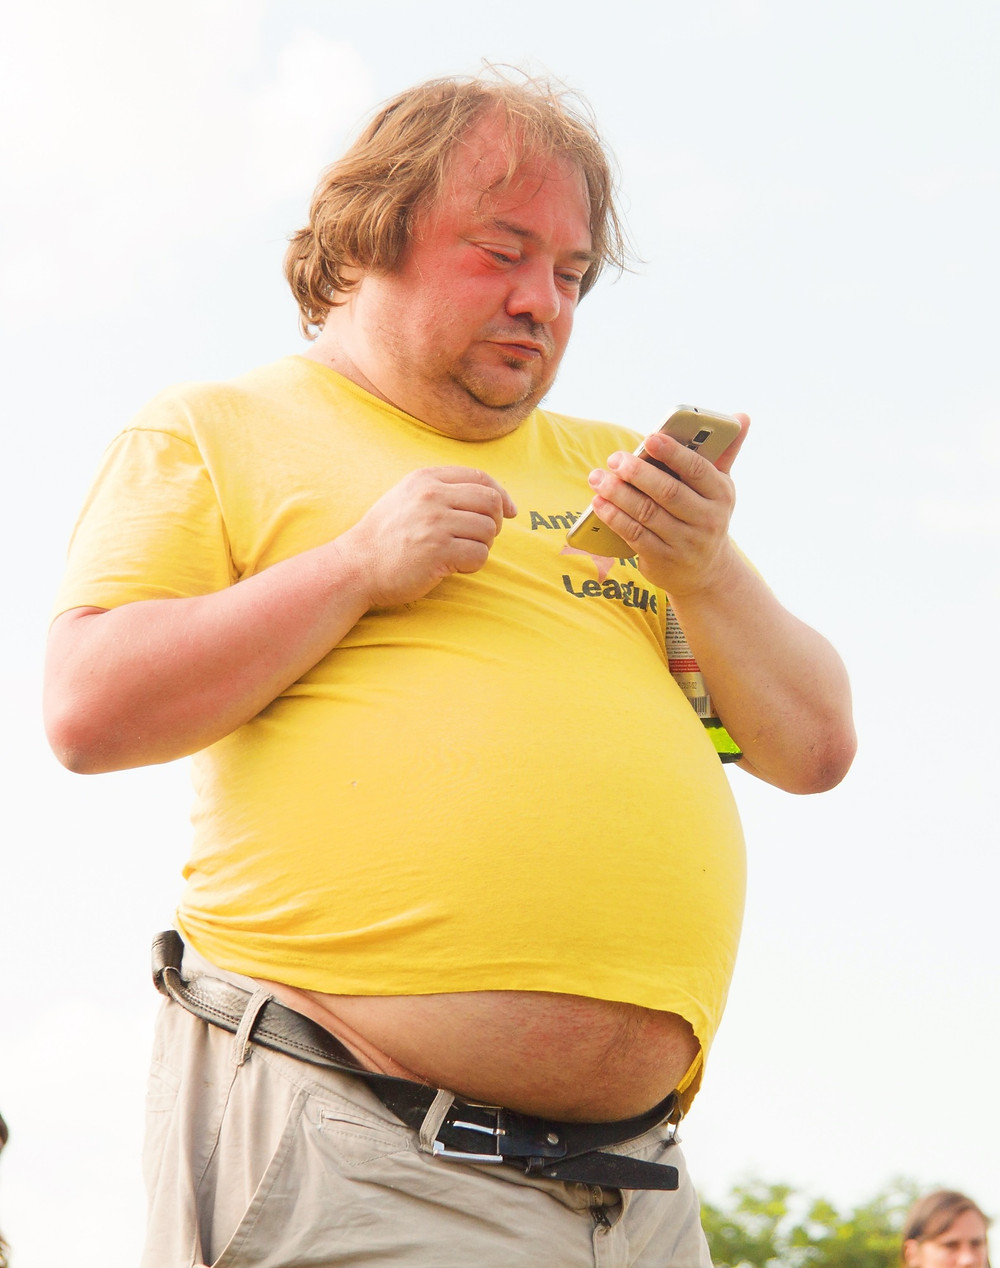 obese man with mobile phone